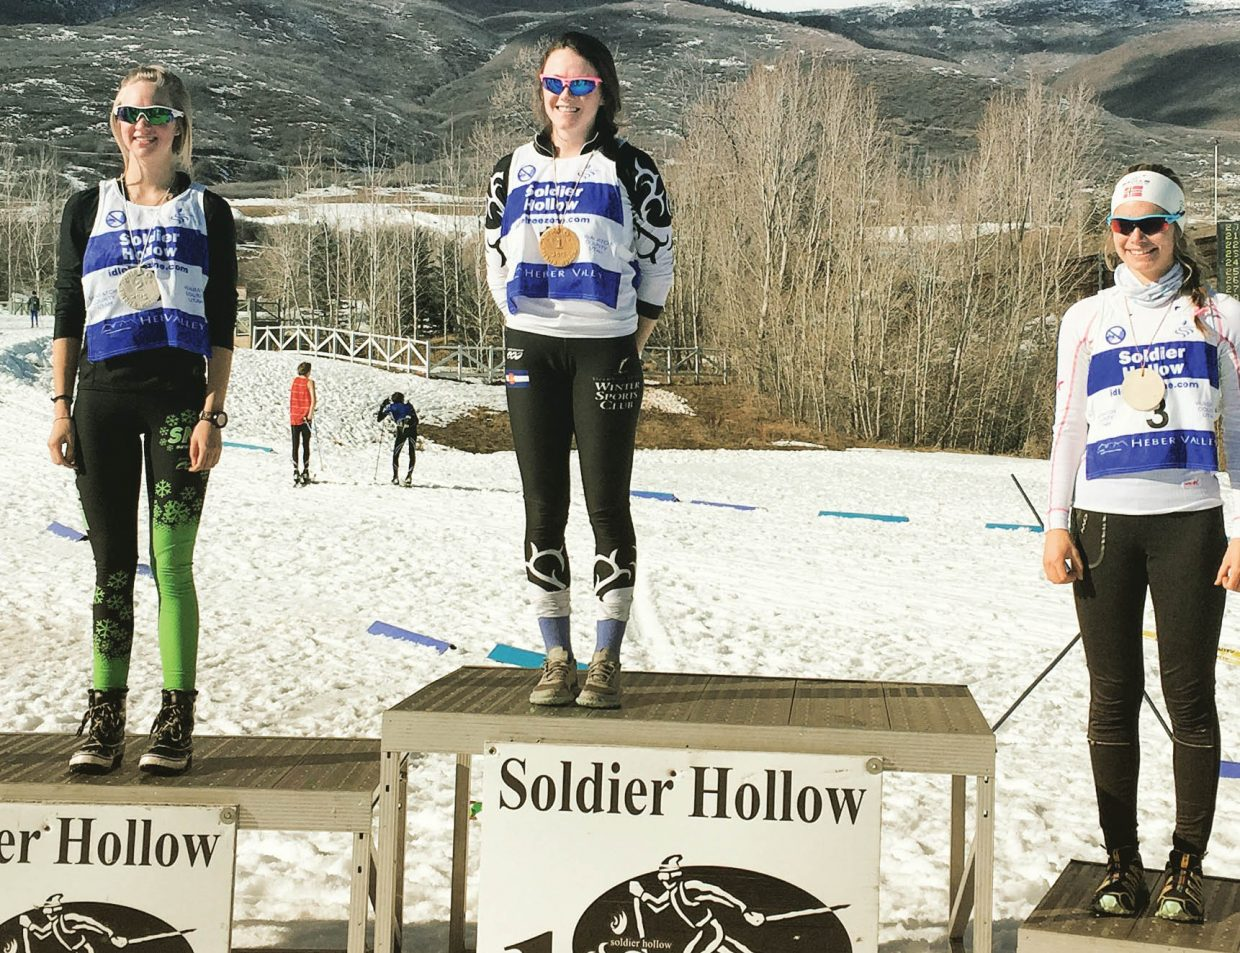 Steamboat Springs Winter Sports Club member Jordi Floyd topped the U18 division in the Mass Start Classic race at the Super Junior National Qualifiers last weekend in Soldier Hollow. She was second overall.